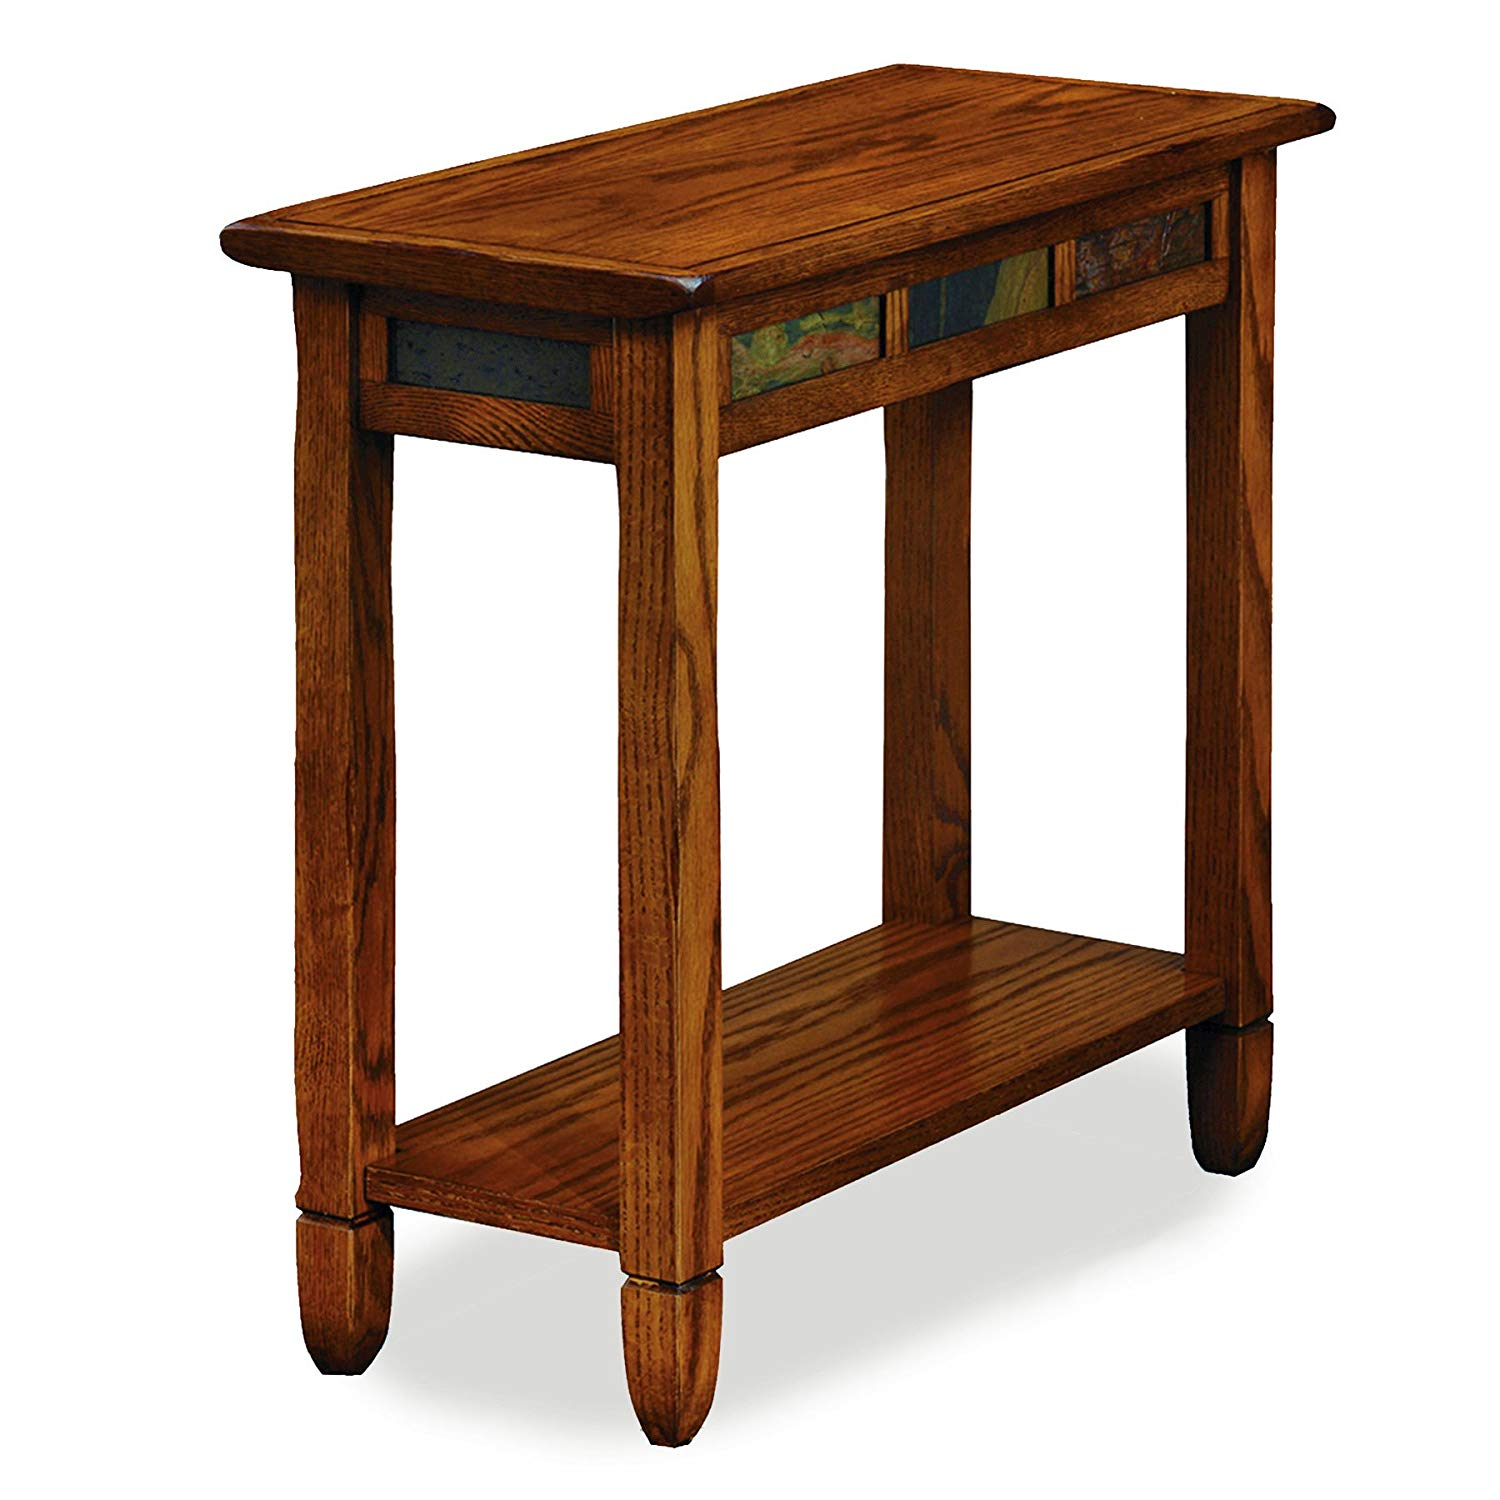 end table narrow side ikea small accent tables coffee power cord types furniture log stump edmonton ethan allen upholstered chairs and bar stools board game leather lounge chair